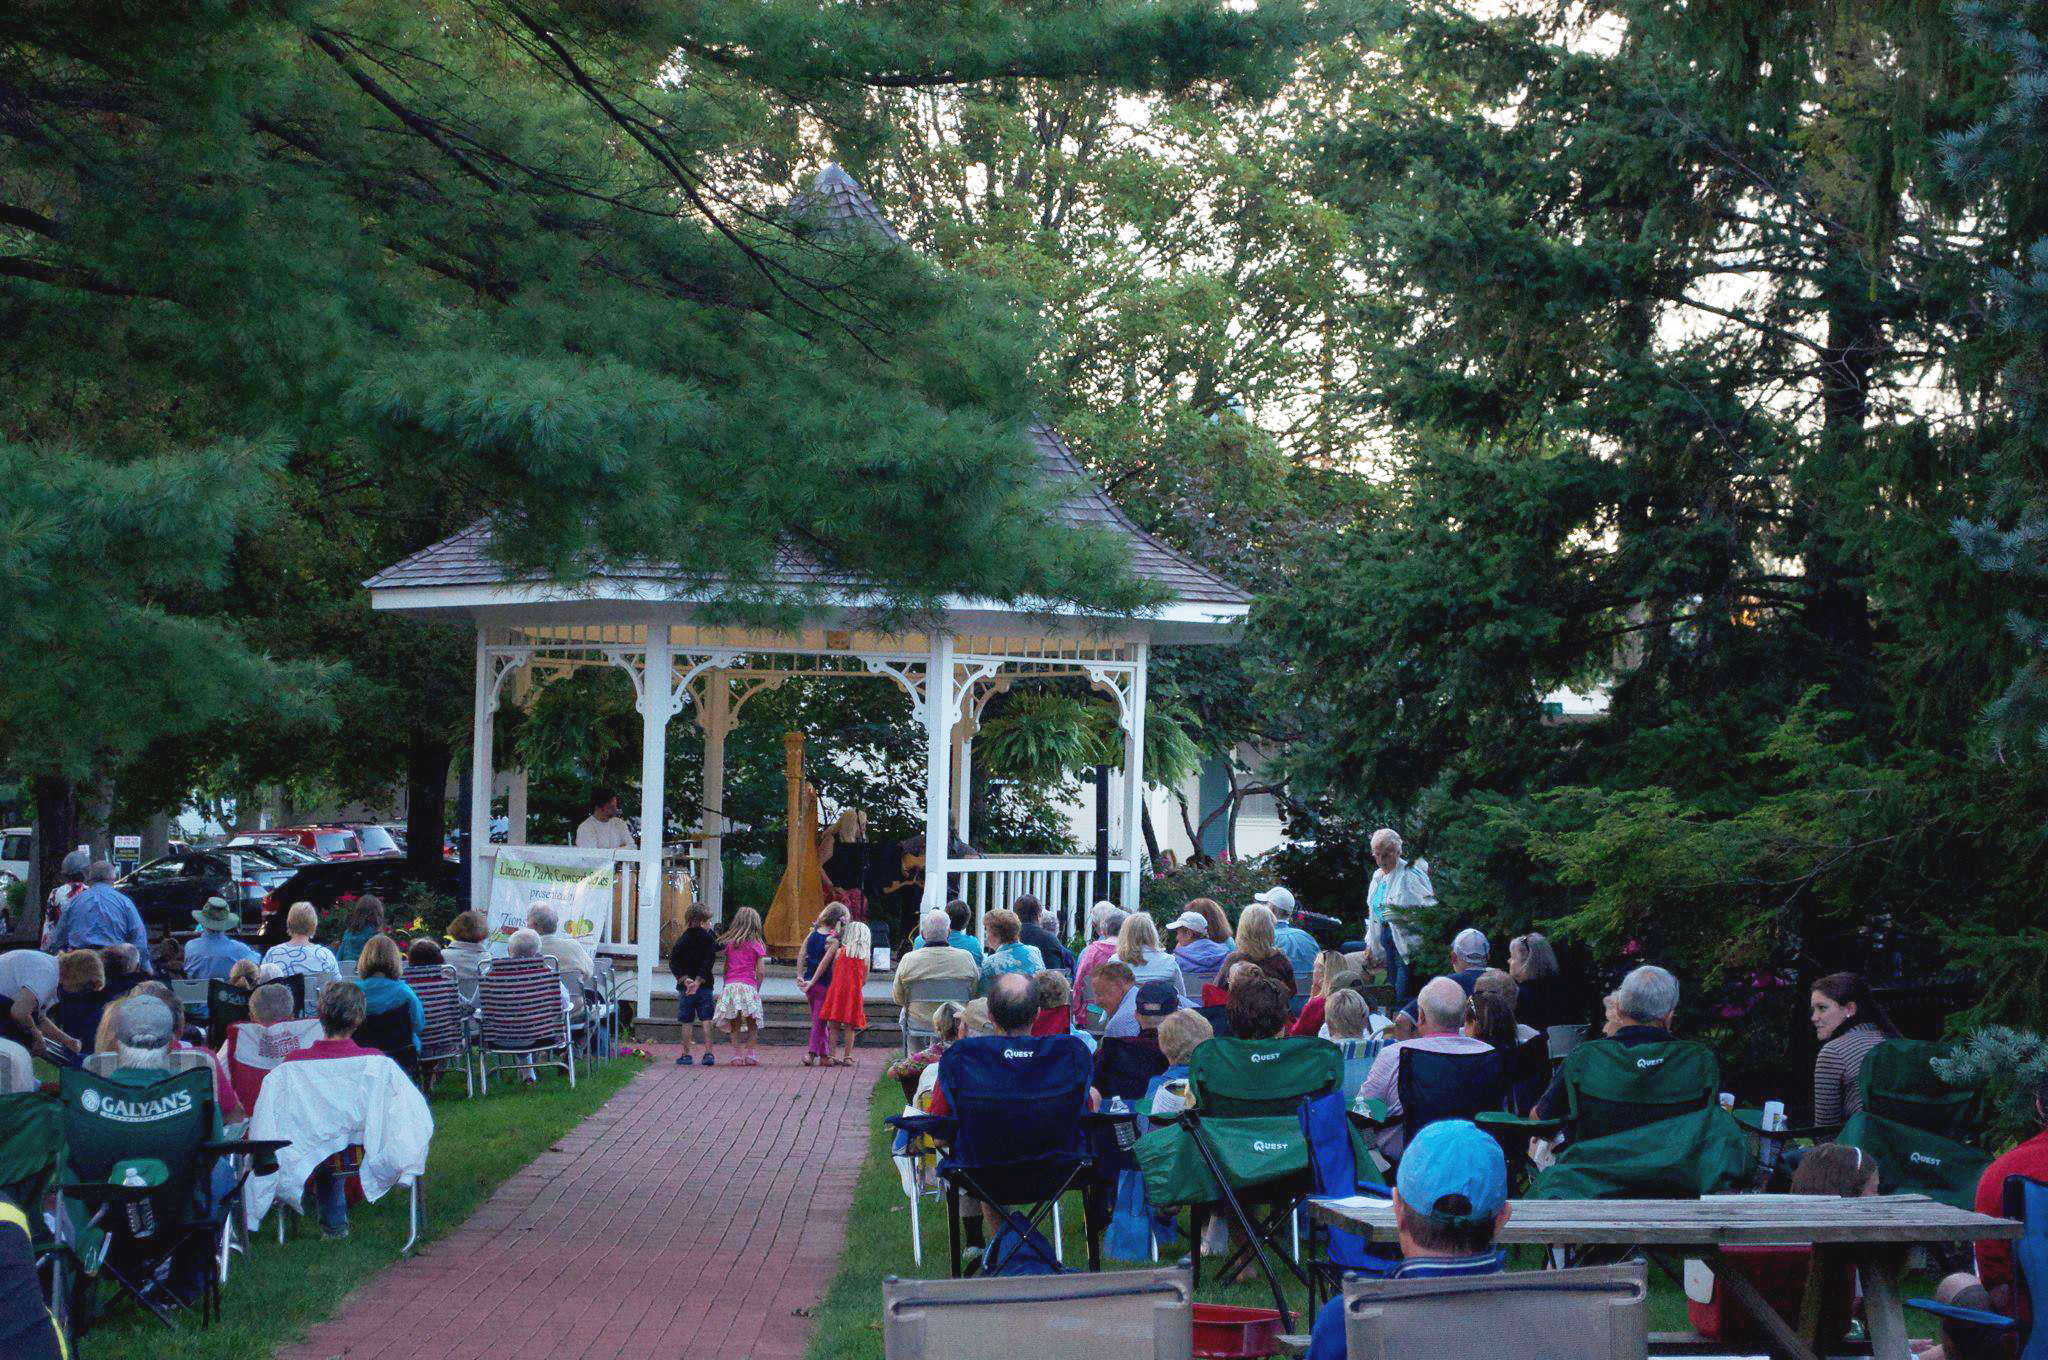 It's a good idea to bring some lawn chairs for Zionsville's summer concerts held at Lincoln Park. (Submitted photo)